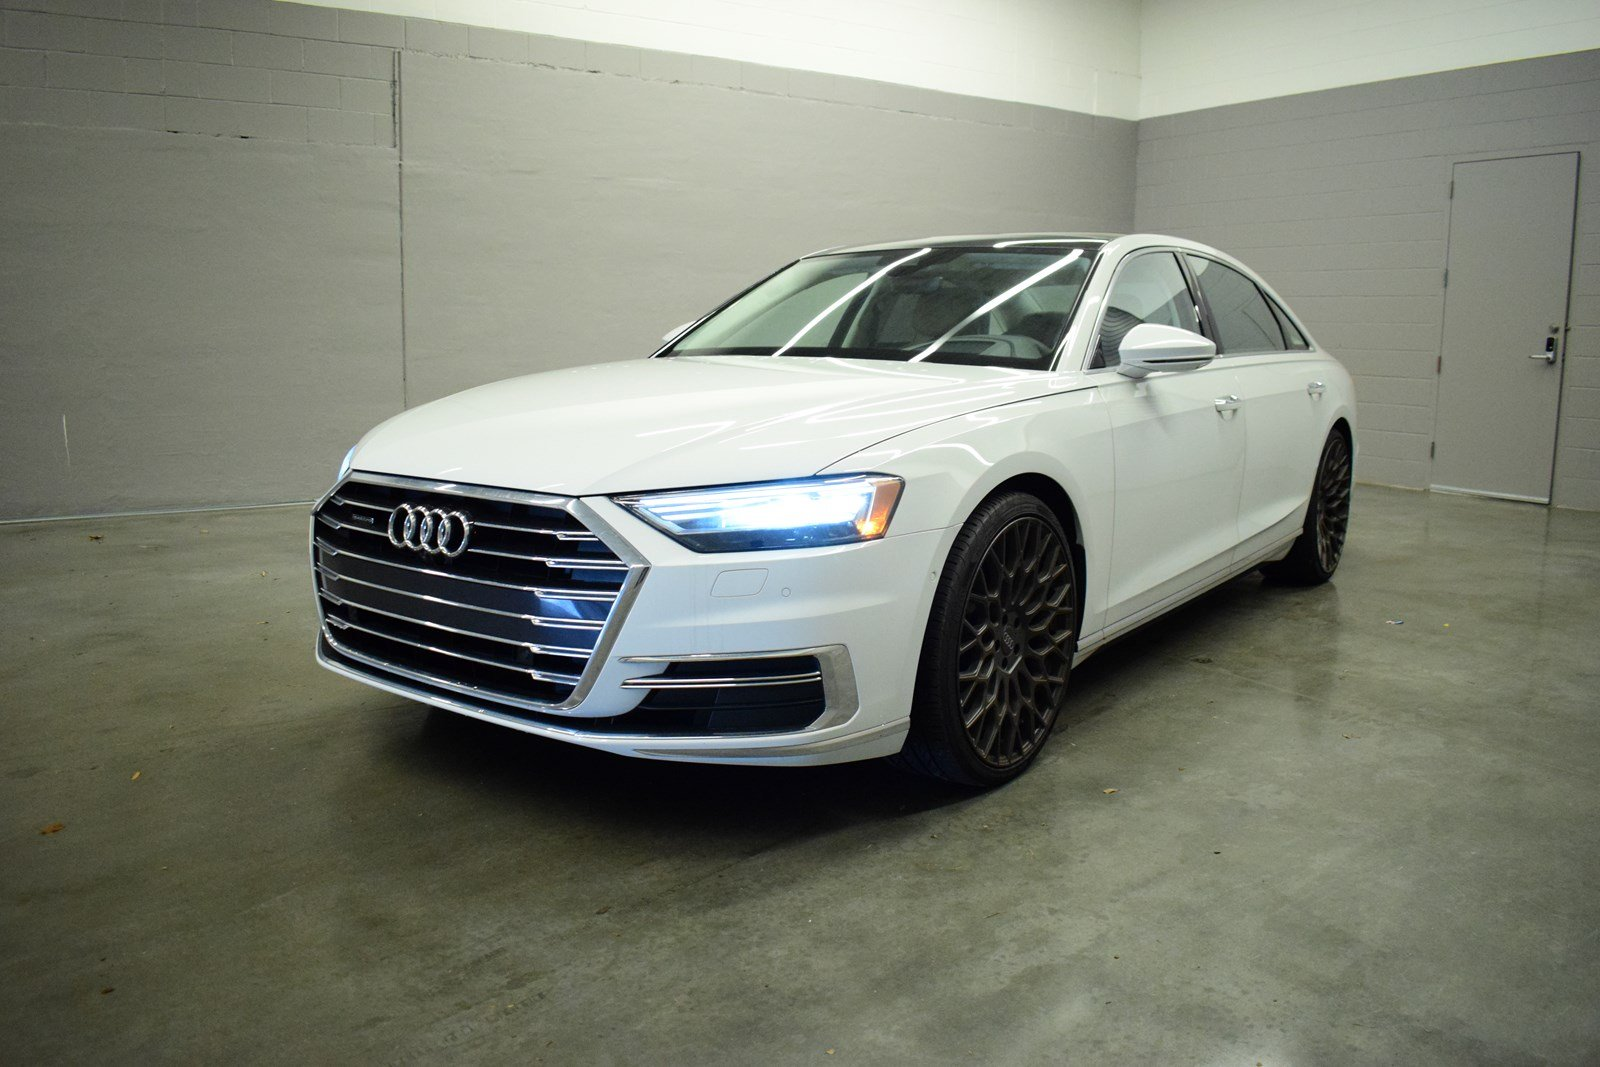 New 2019 Audi A8 L 55 4dr Car In Union City Kn003853 Butler Auto